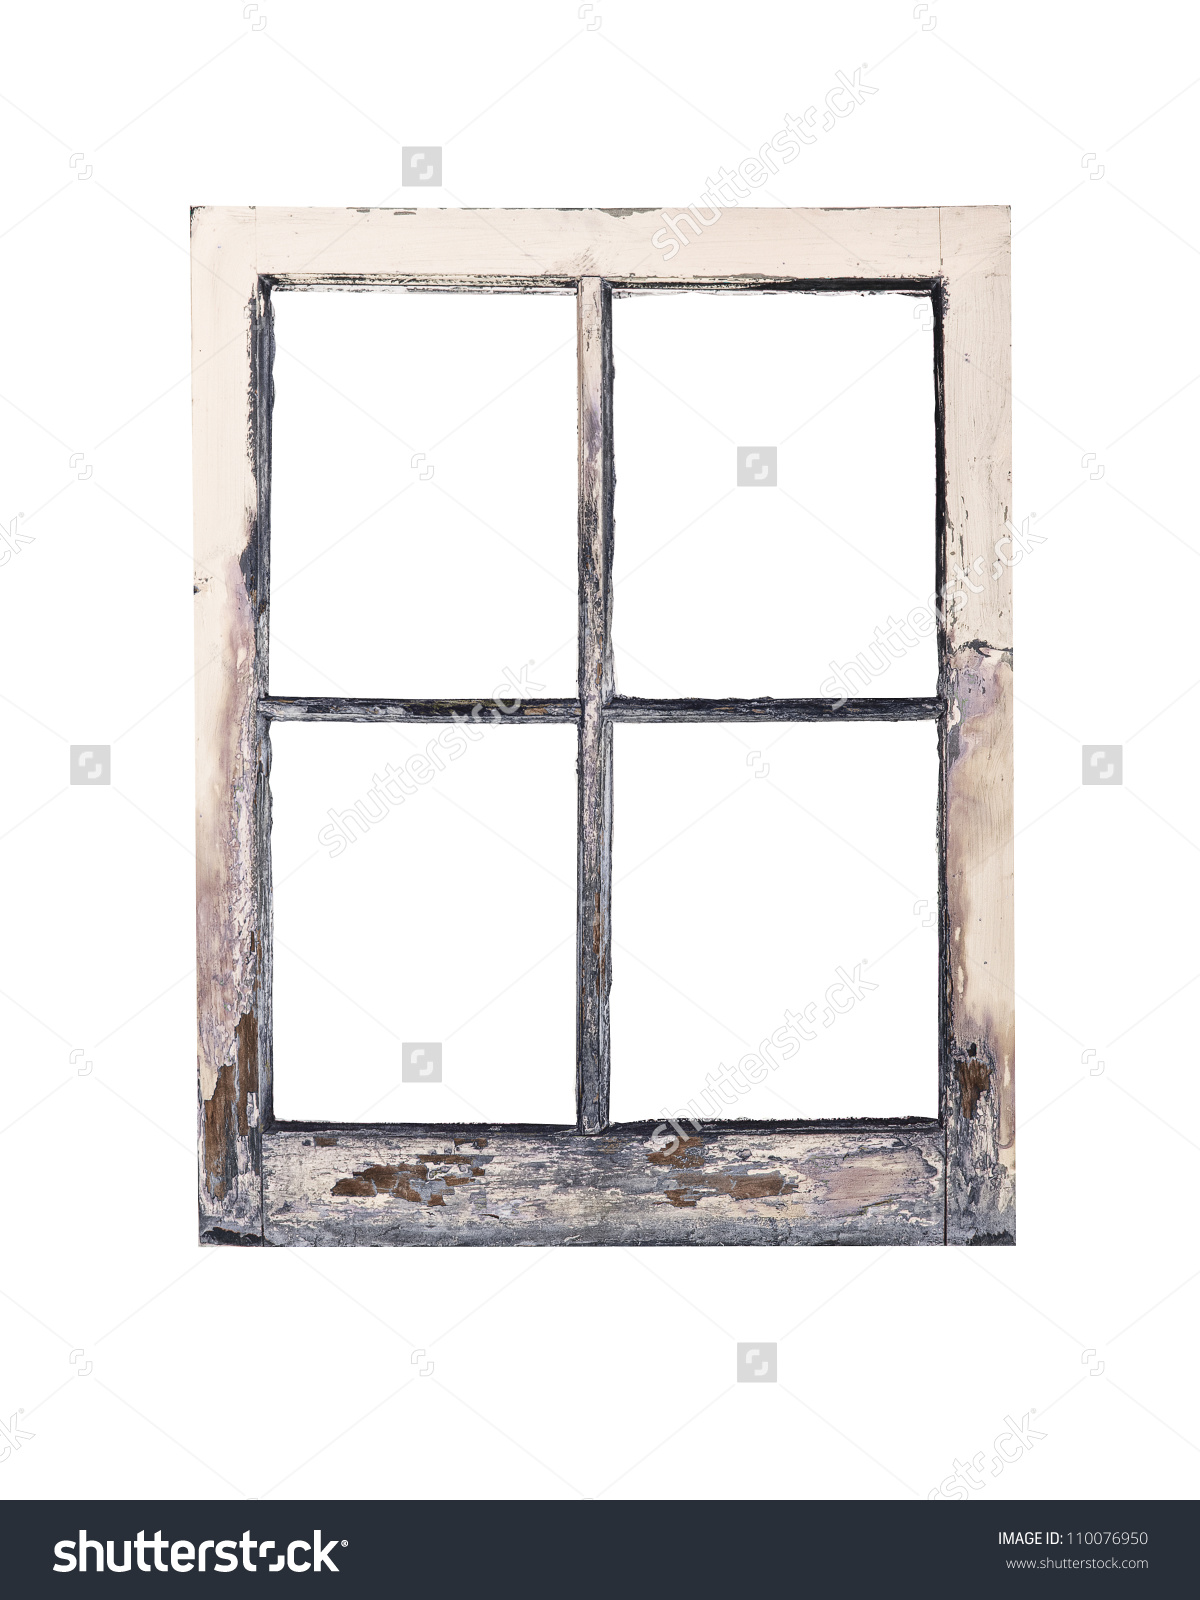 Old Weathered Rustic Window Frame Peeling Stock Photo 110076950.